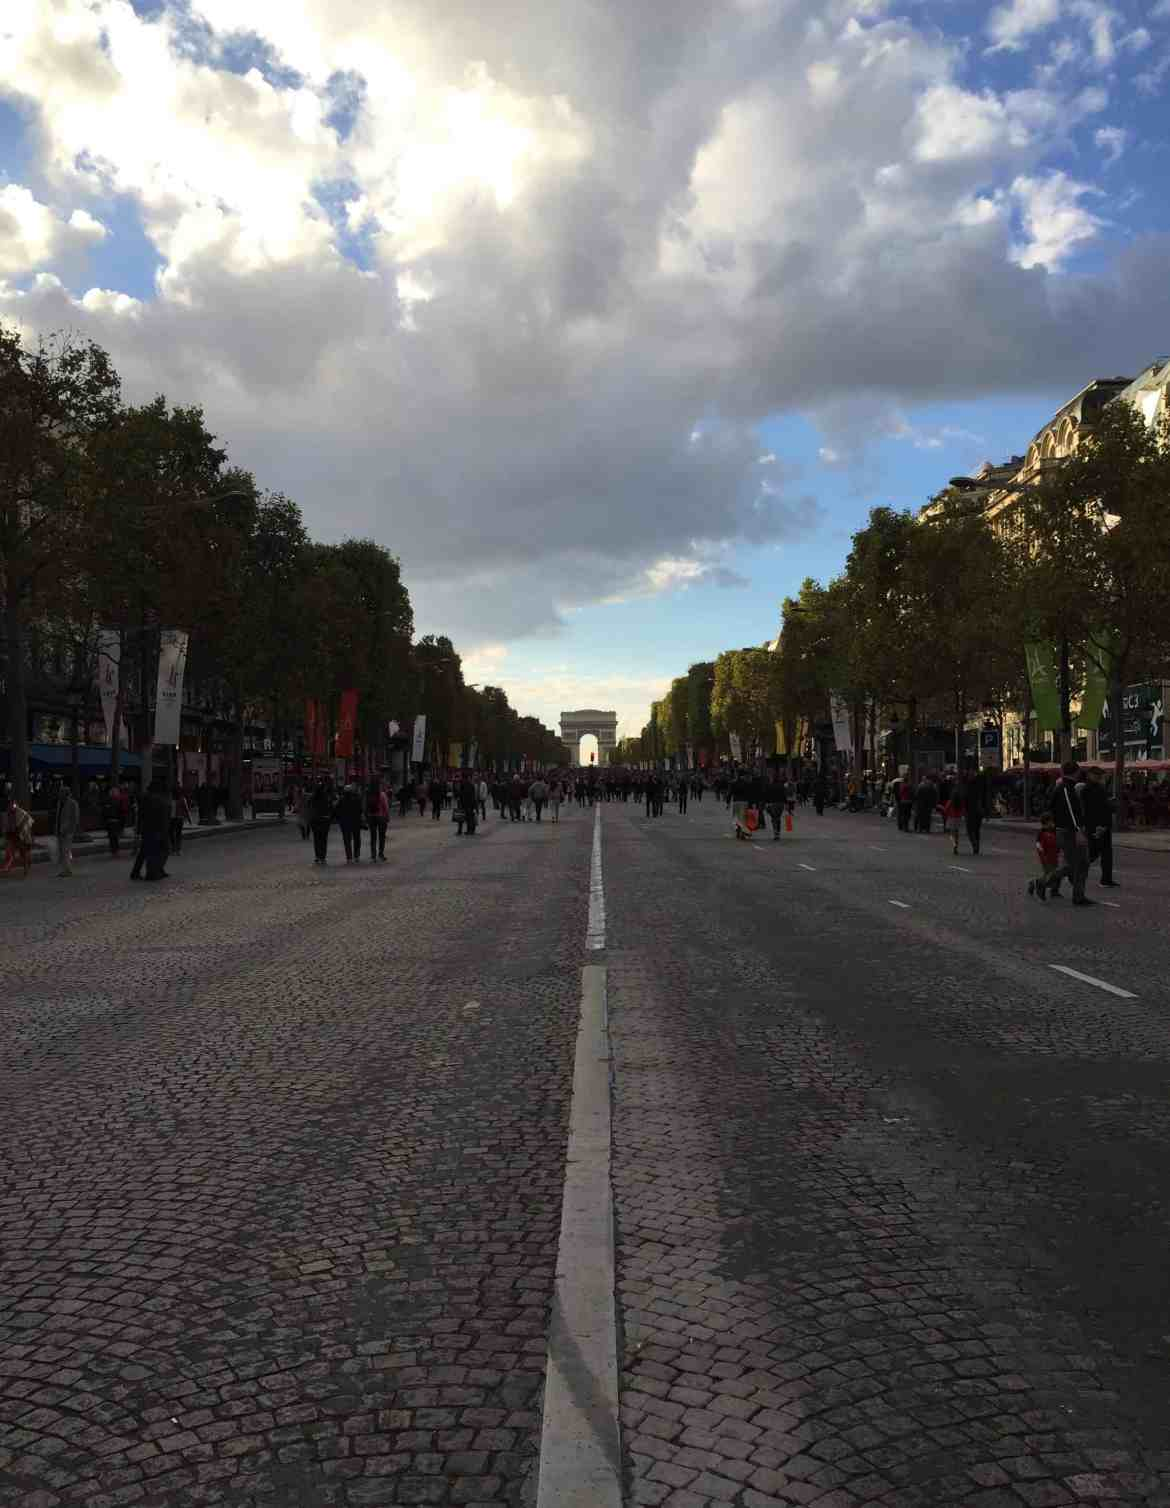 Arc de Triomphe in Paris from Champs Elysées